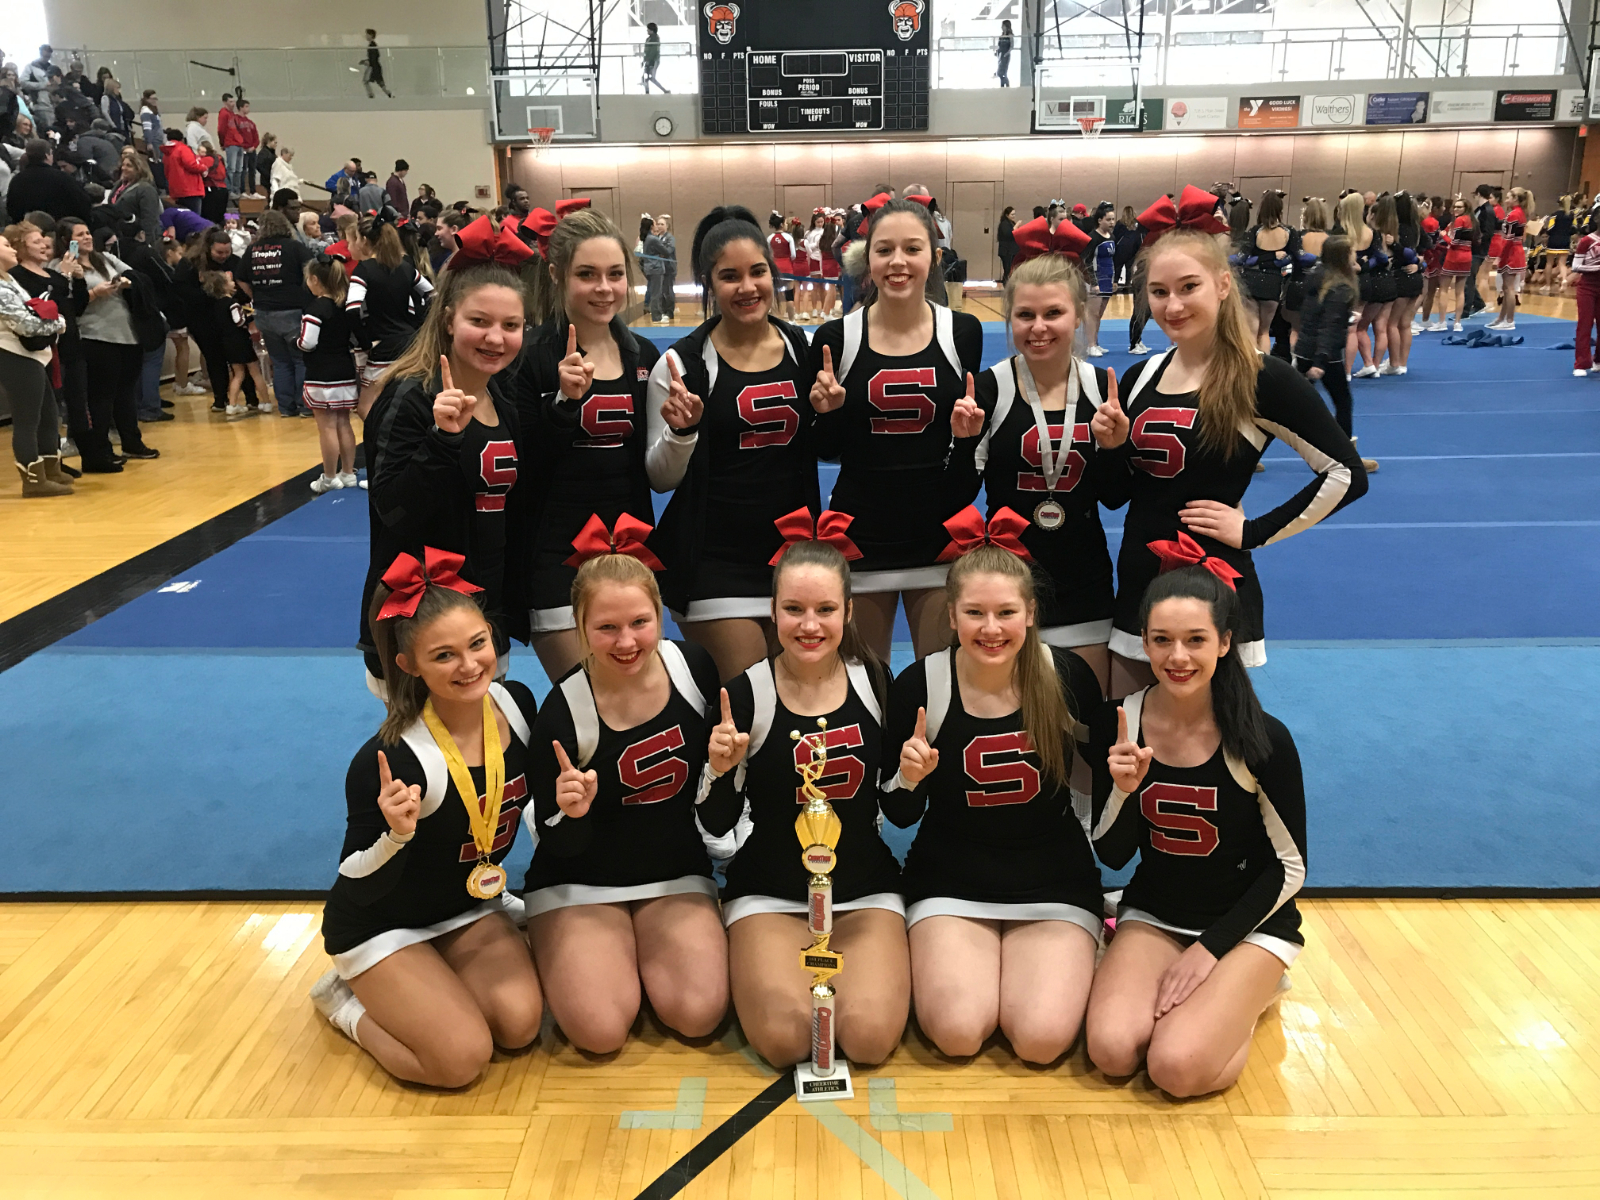 Cheer Team Named Grand Champions